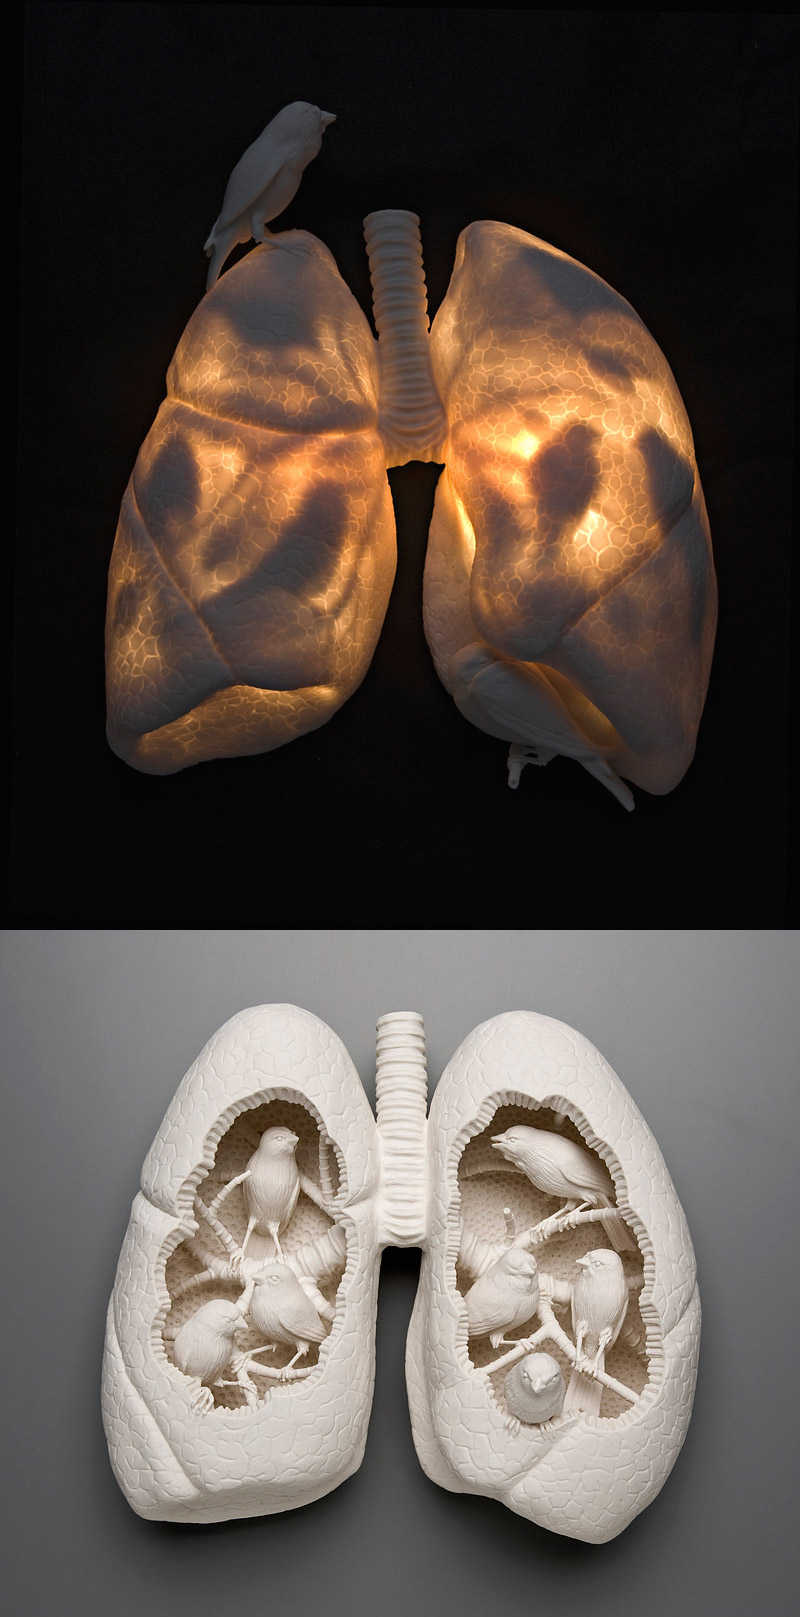 art blog - Kate MacDowell - empty kingdom